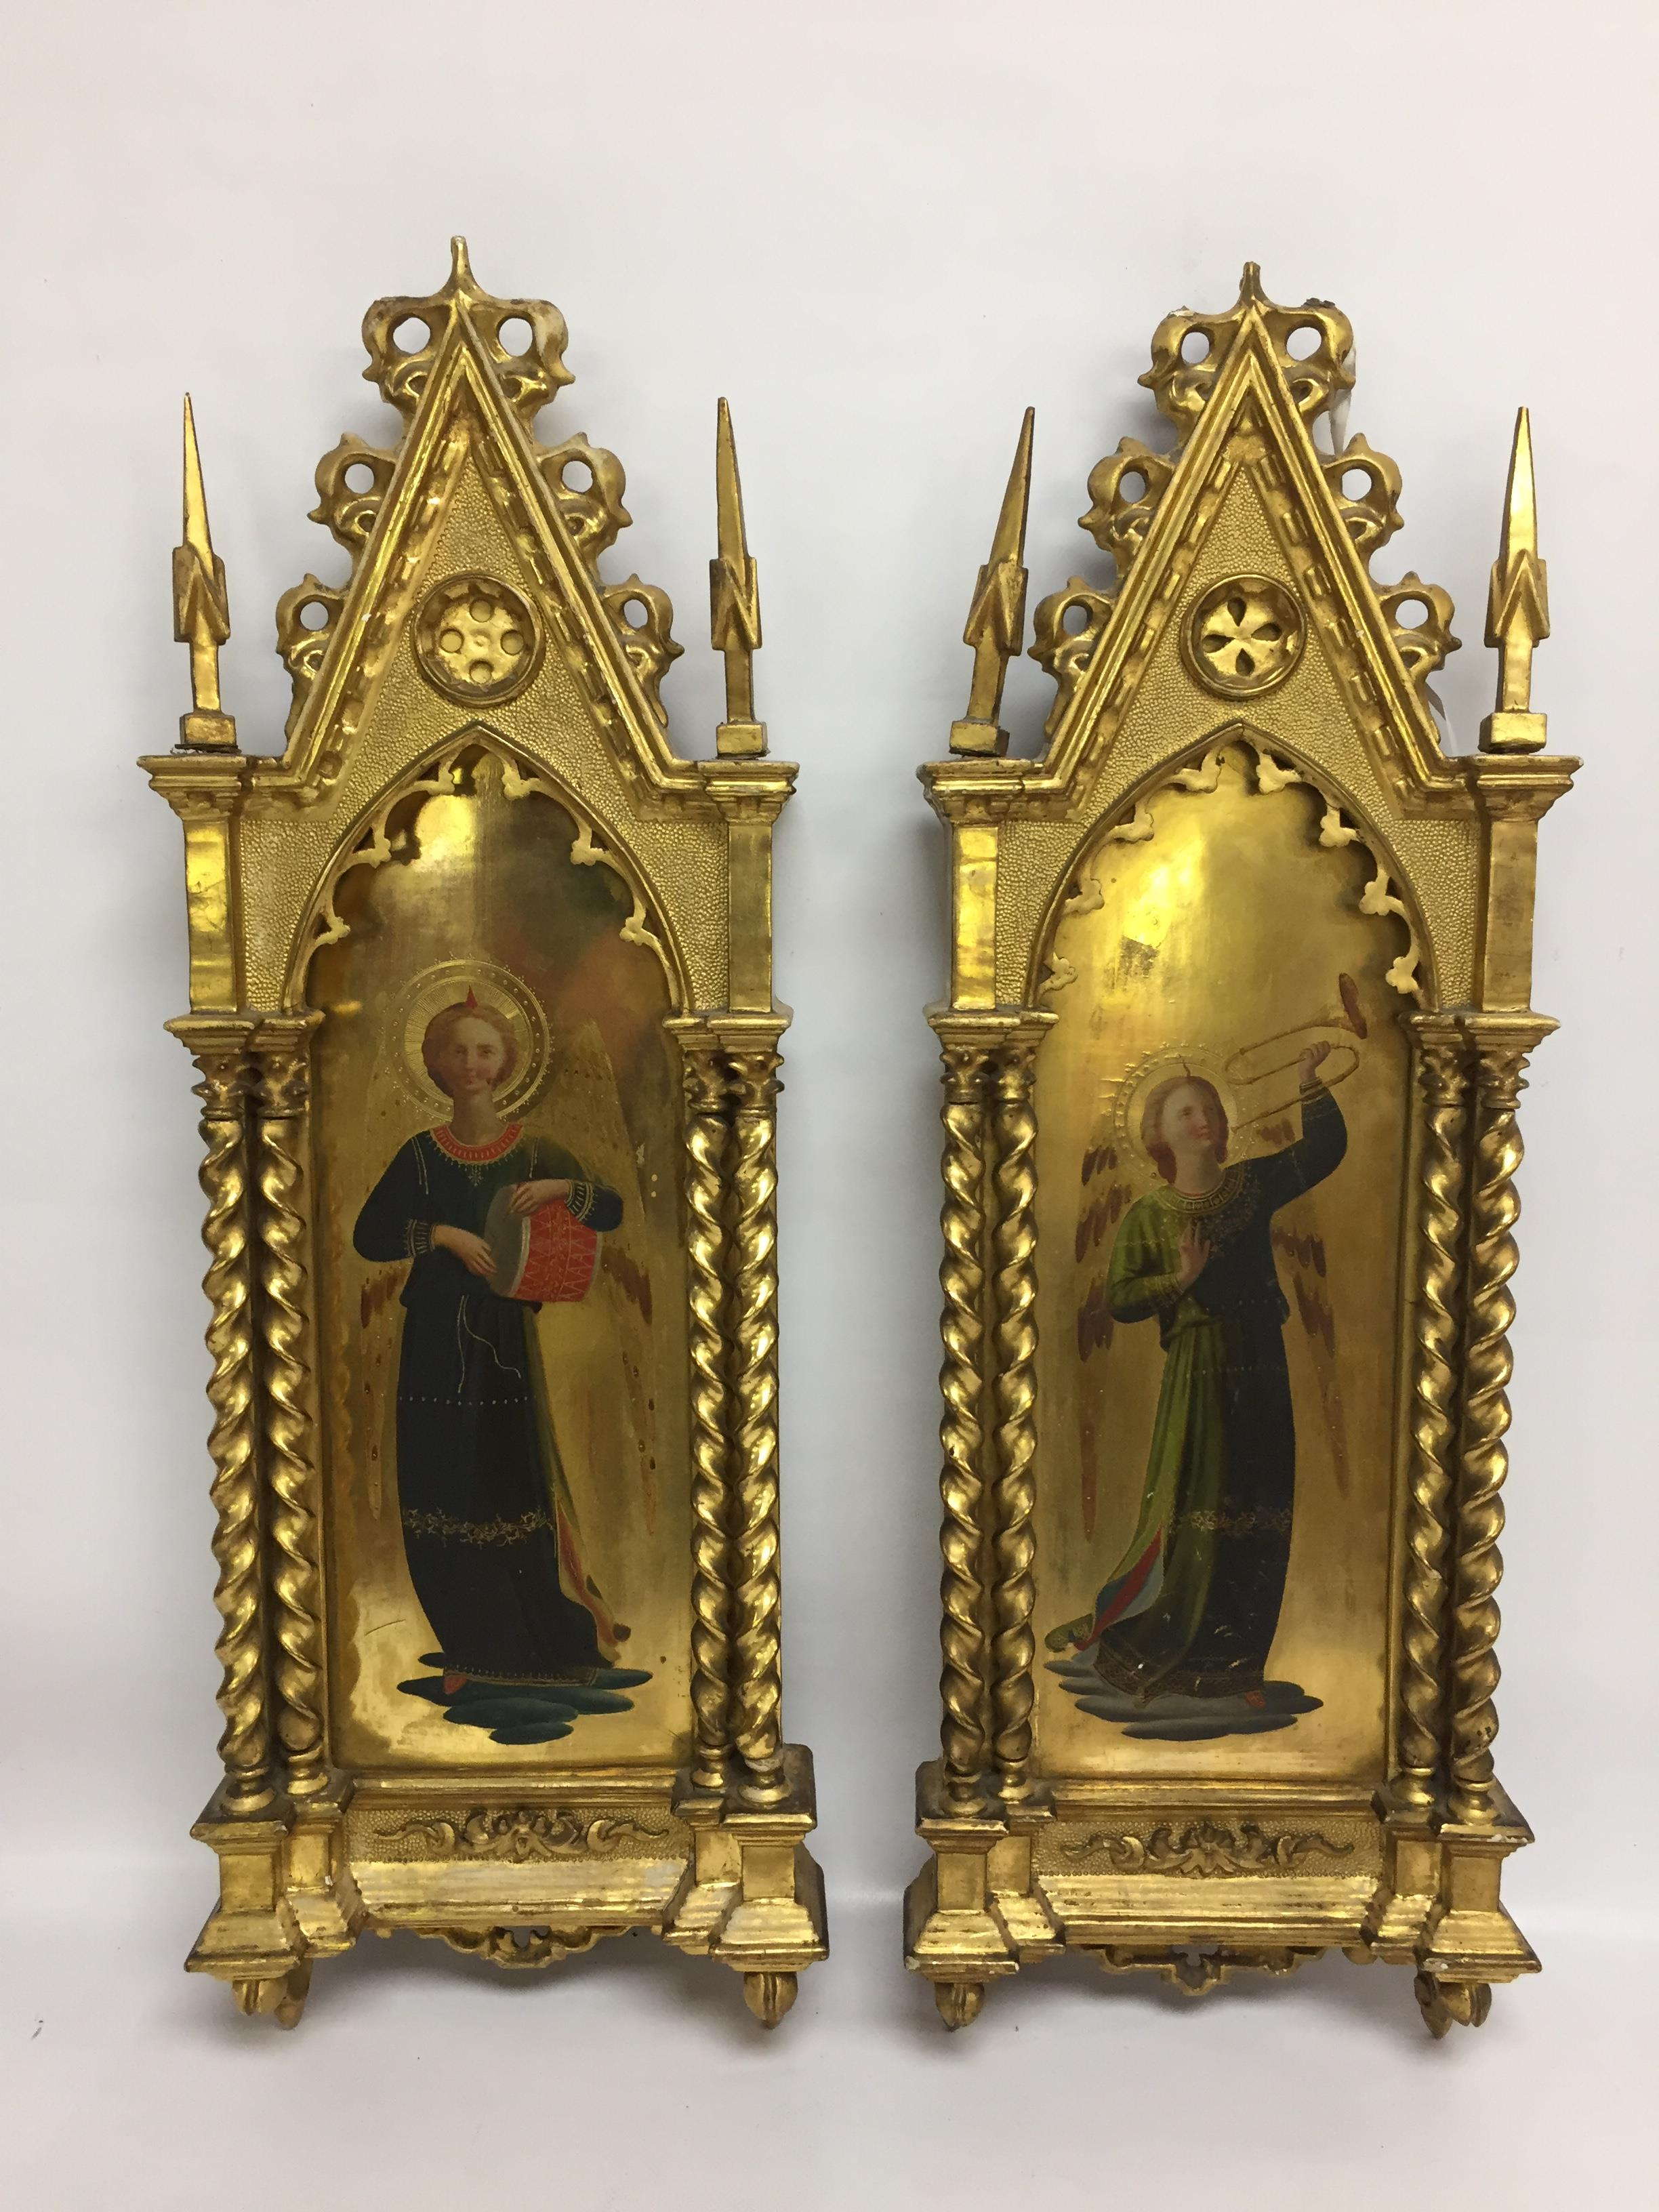 Lot 32 - A PAIR OF 19TH CENTURY ITALIAN ANTIQUE GILT WOOD PAINTED ICONS BEARING LABEL PATT GALLERY TO BACK